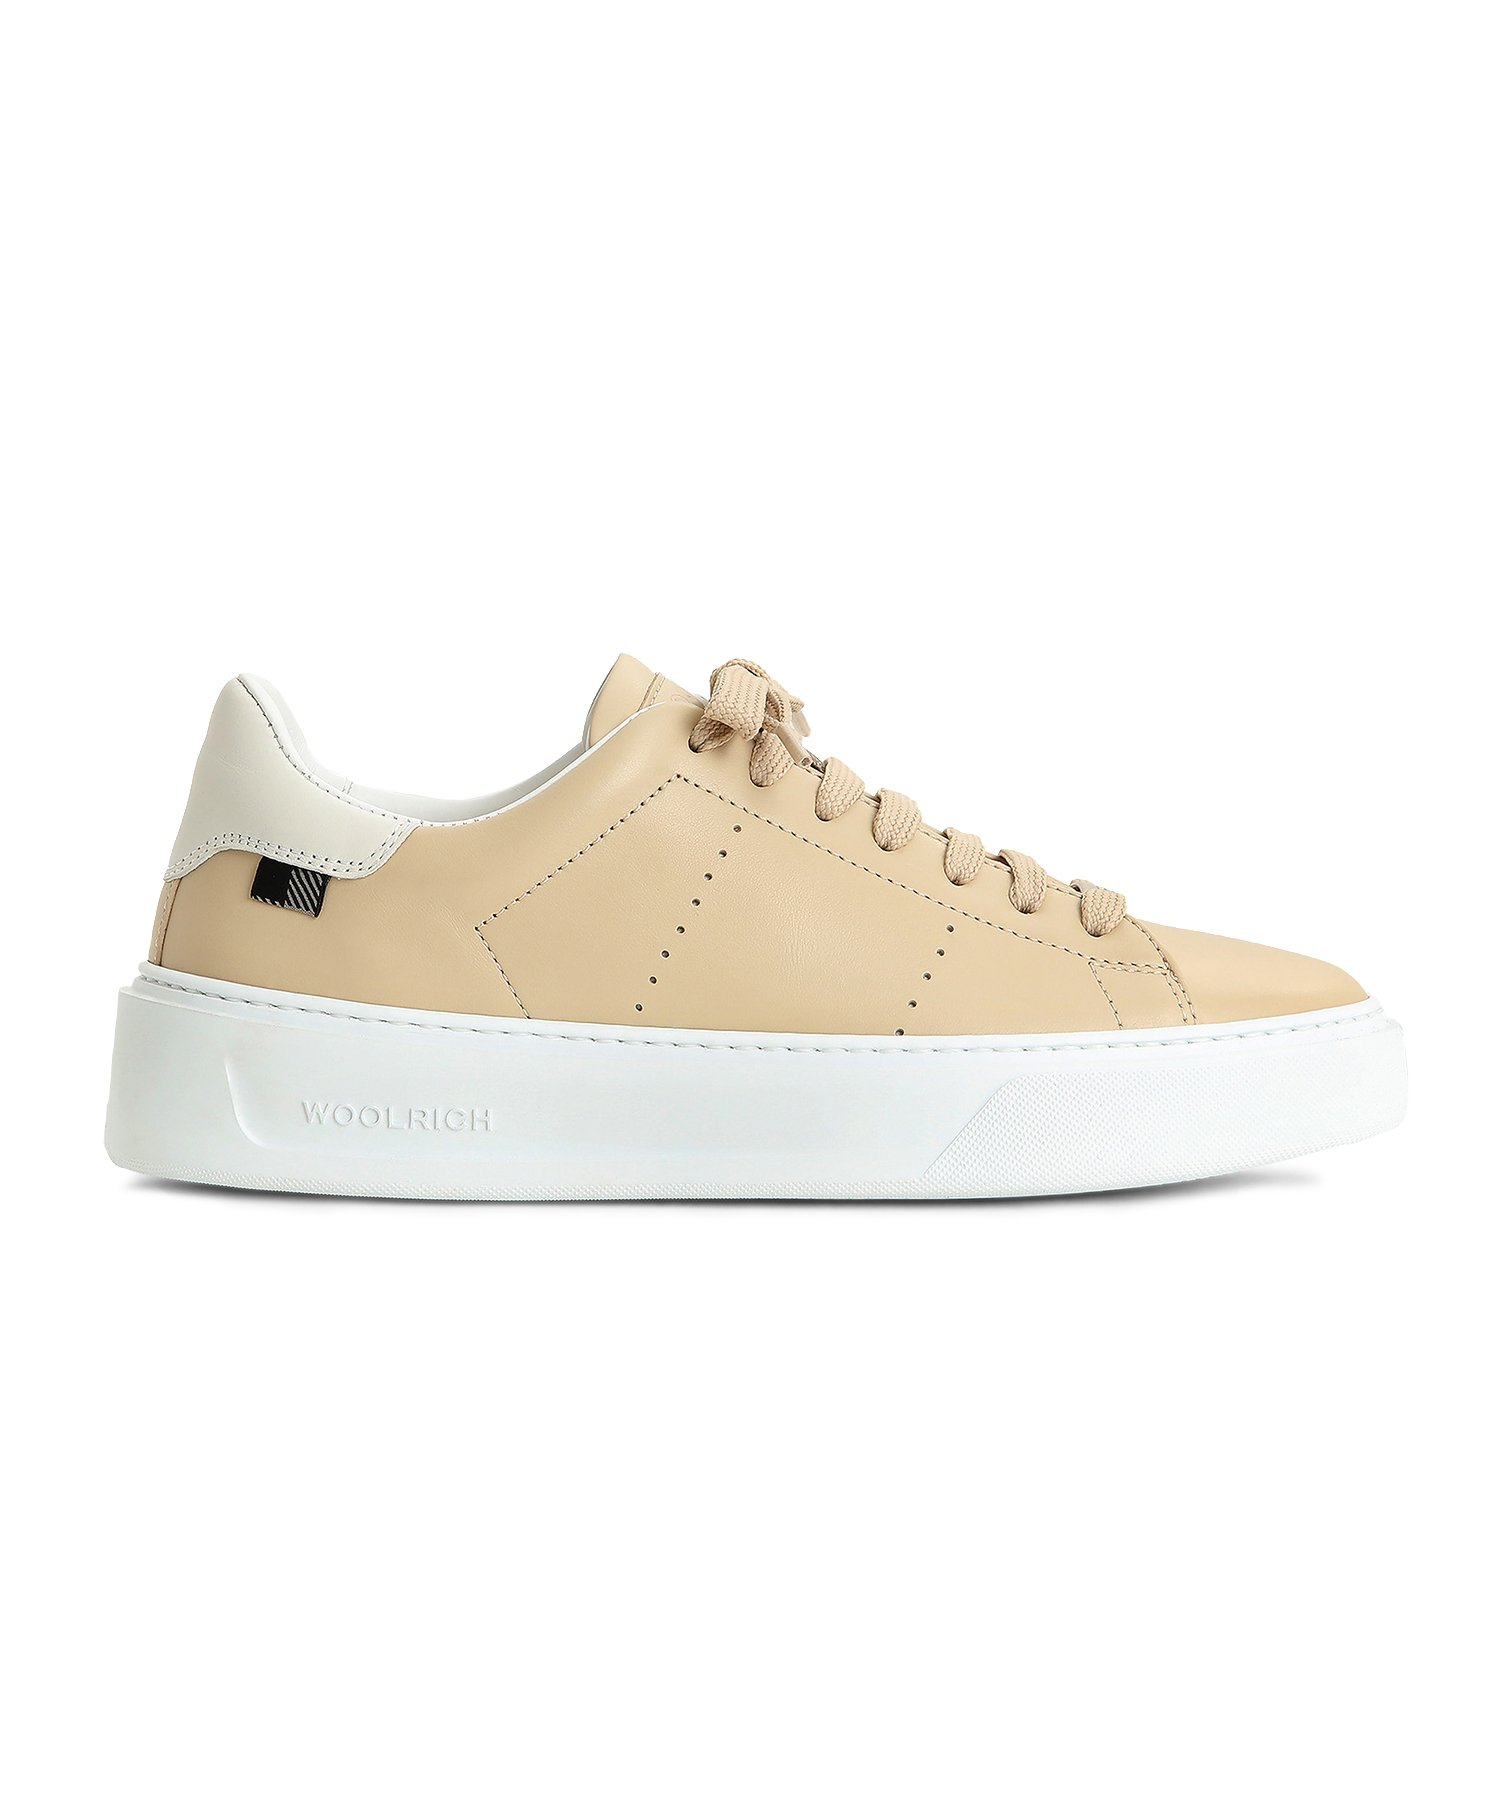 Woolrich CALF LEATHER CLASSIC COURT SNEAKERS